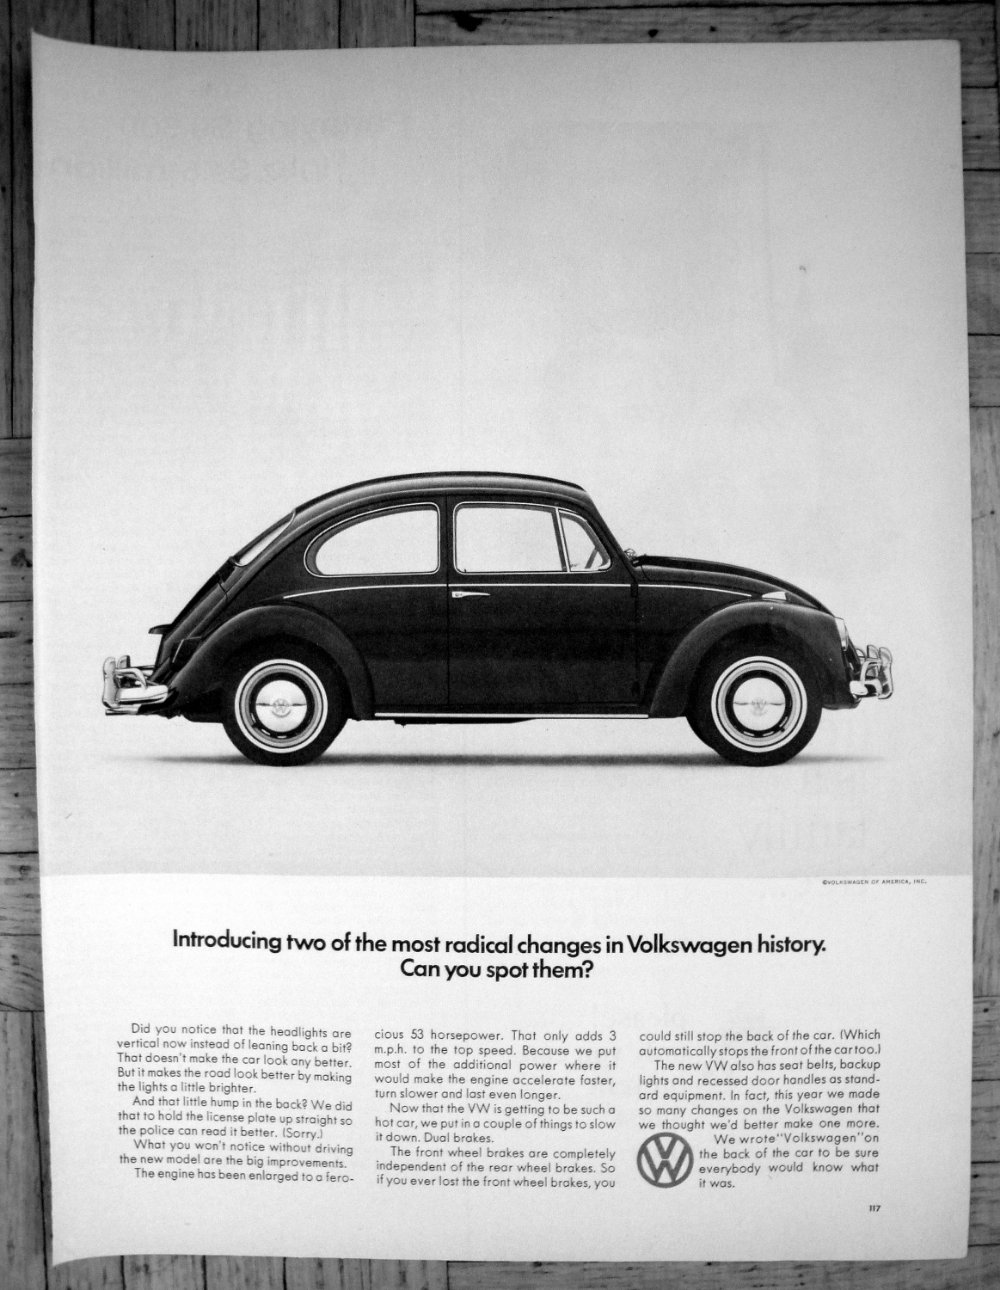 1966 Vw Beetle Bug 2 Radical Changes Volkswagen Original 13 5 10 5 Magazine Ad Vintage Vw Vw Beetle Classic Vintage Vw Bus